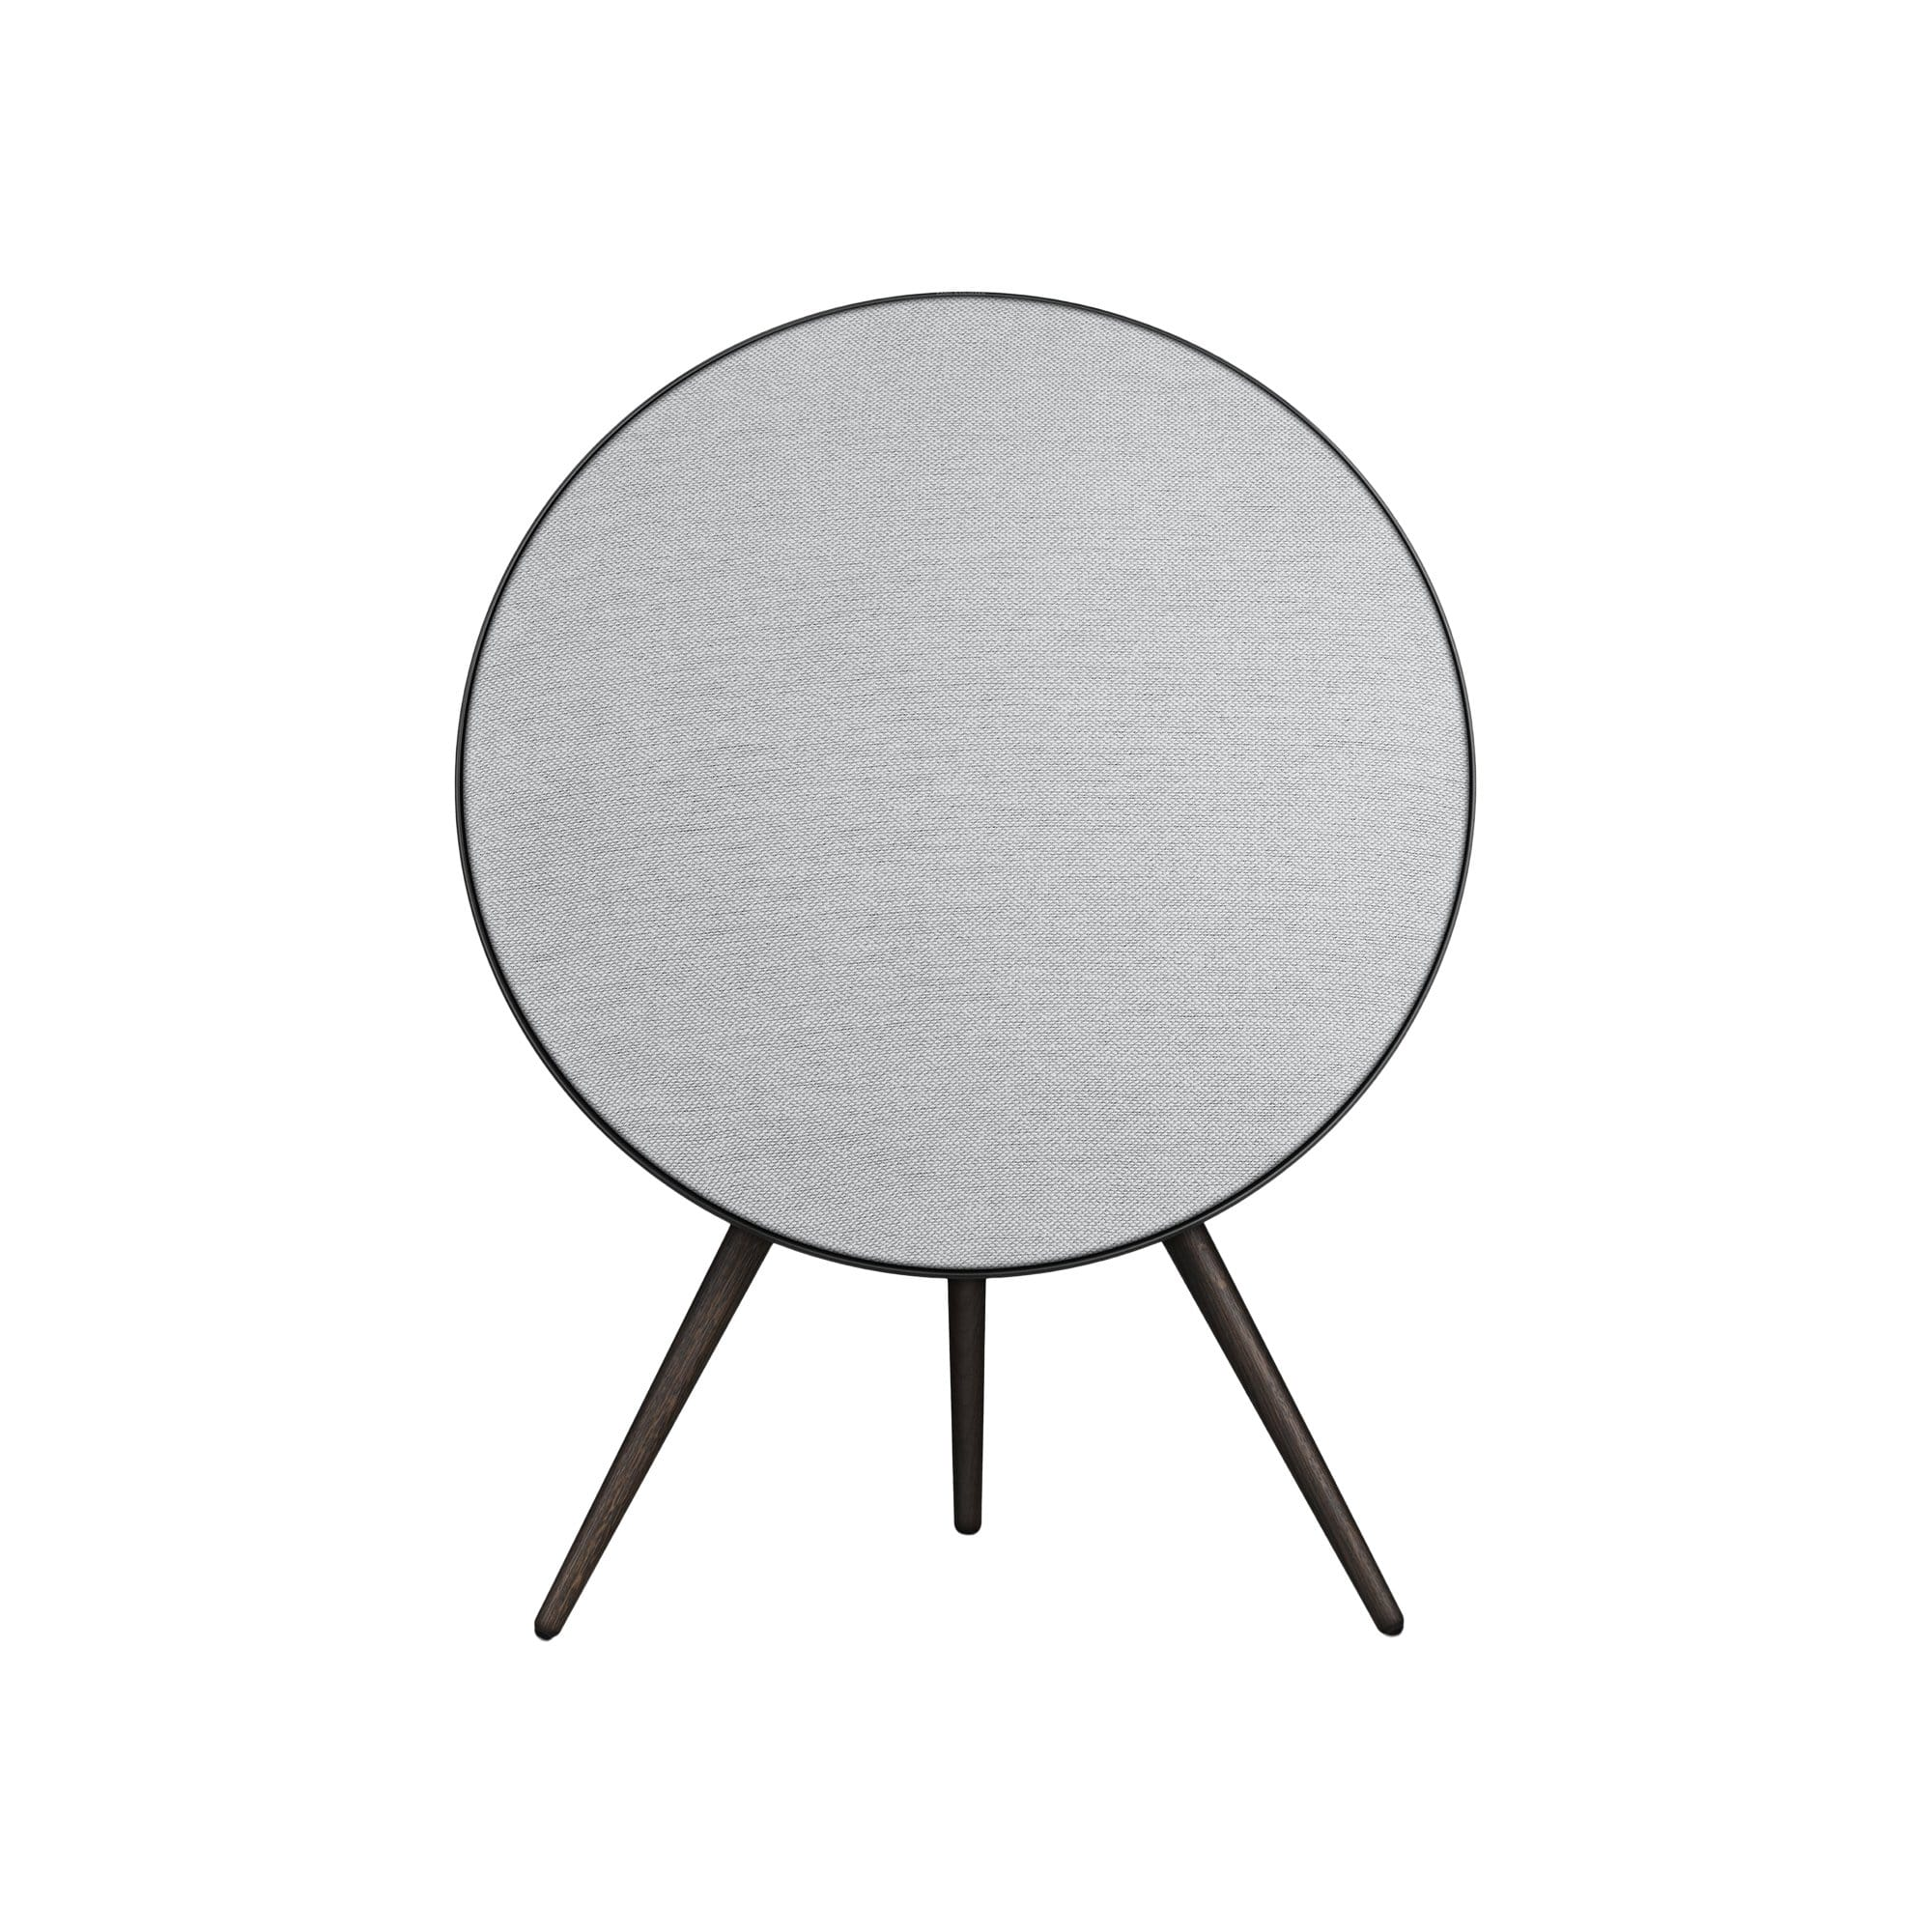 Anthracite Beoplay A9 4th Gen + Voice Assist Wireless Multiroom Speaker